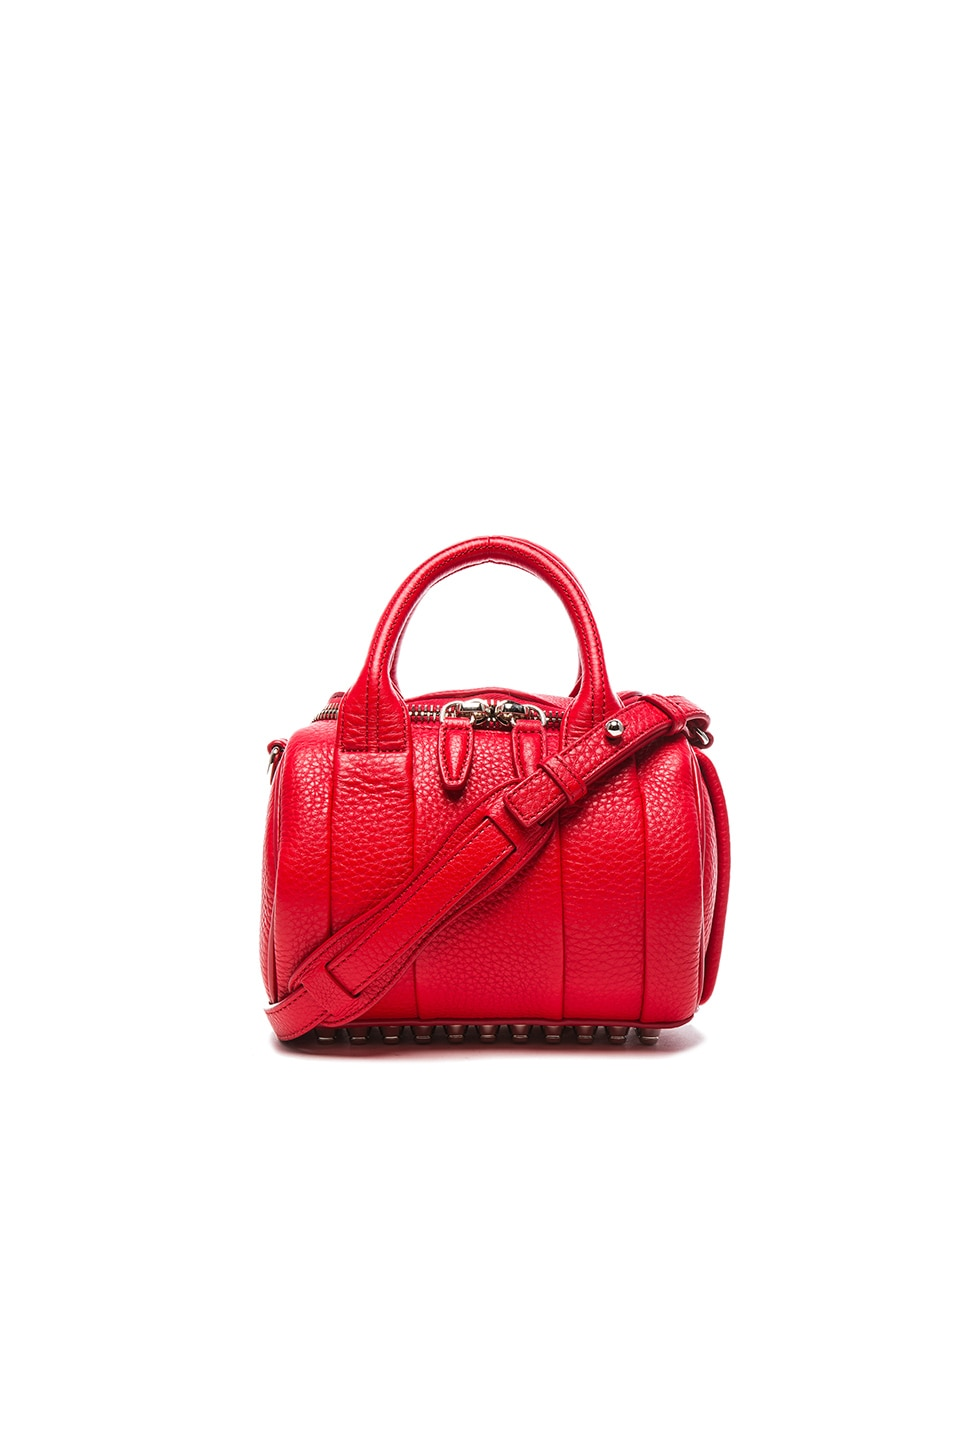 Image 1 of Alexander Wang Mini Rockie Bag with Silver Hardware in Cult